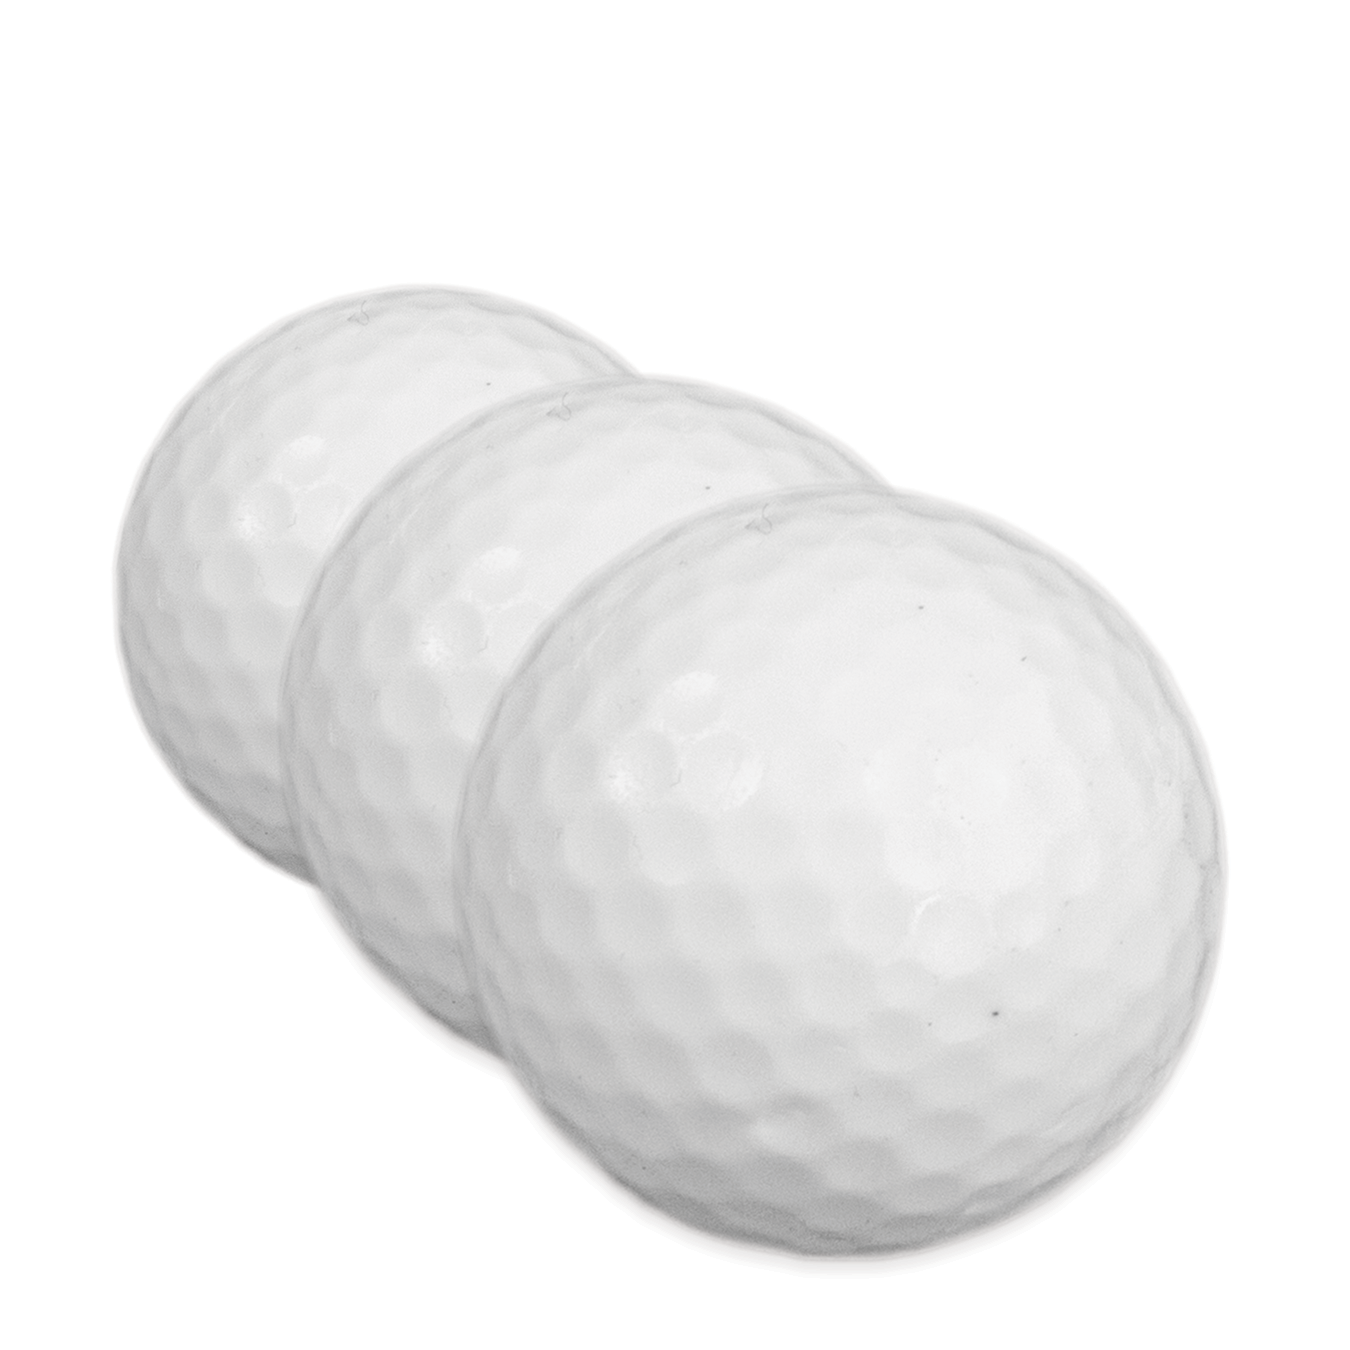 Soap Golf Ball - 3 Pack